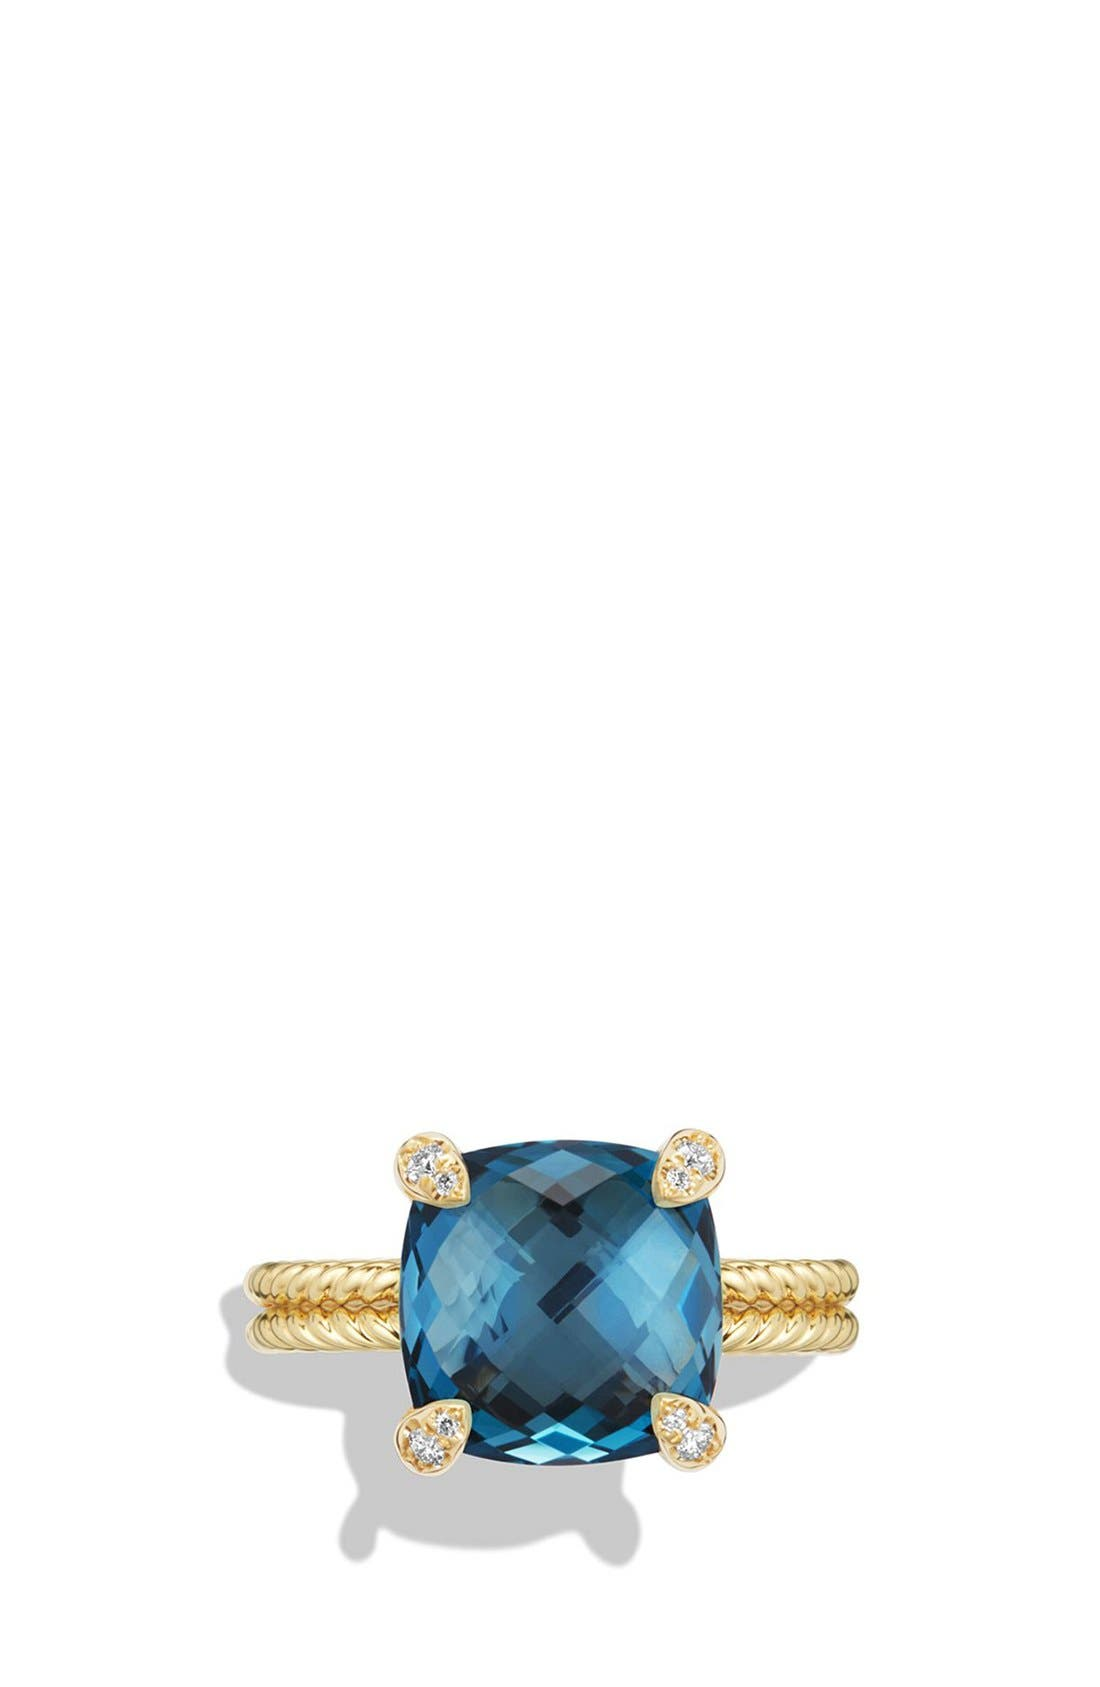 Châtelaine Ring with Hampton Blue Topaz and Diamonds in 18K Gold,                             Alternate thumbnail 5, color,                             HAMPTON BLUE TOPAZ